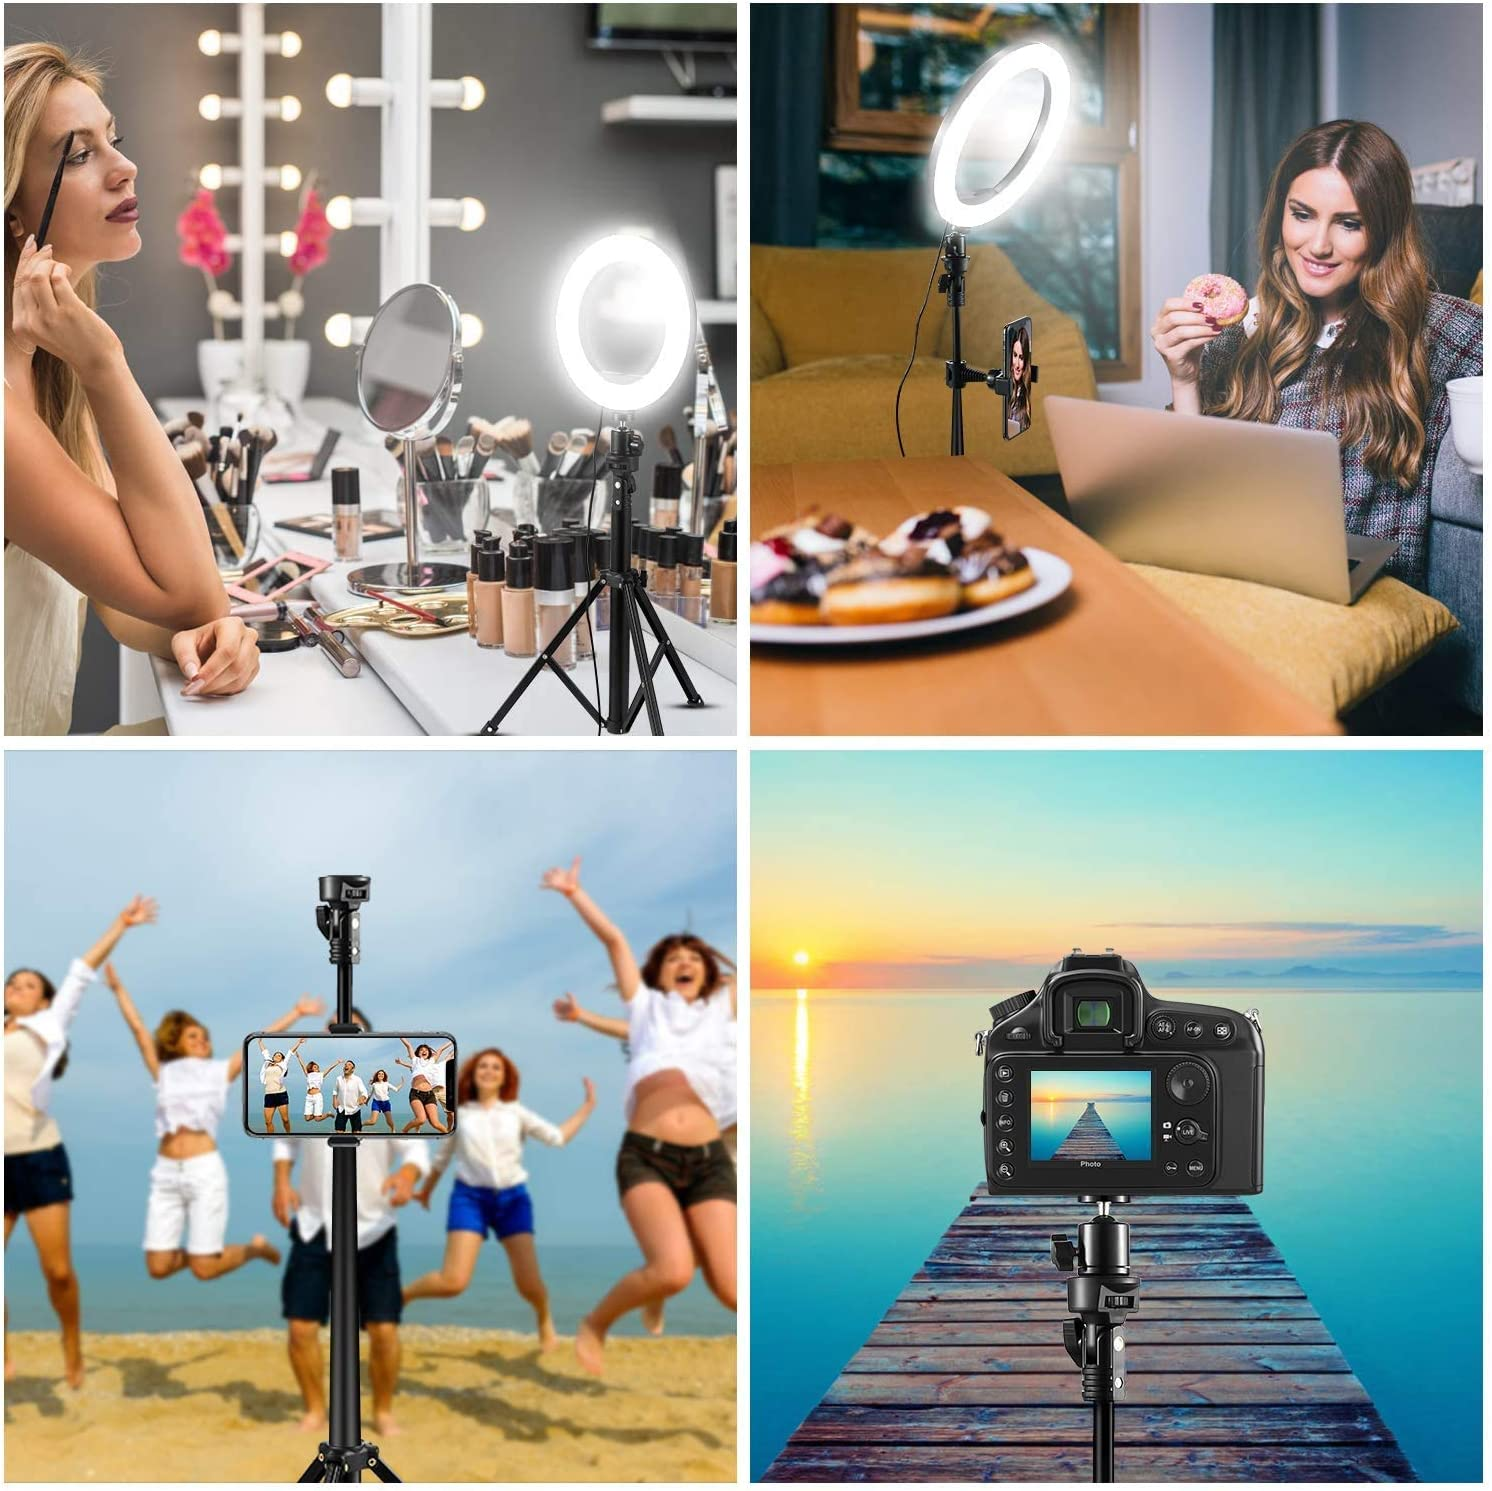 for Live Stream//Makeup//Take Photo//Vlog//YouTube Video Camera Light Dimmable LED Lighting Filming Equipment 8 Selfie Ring Light with Tripod Stand /& Cell Phone Holder Studio Light